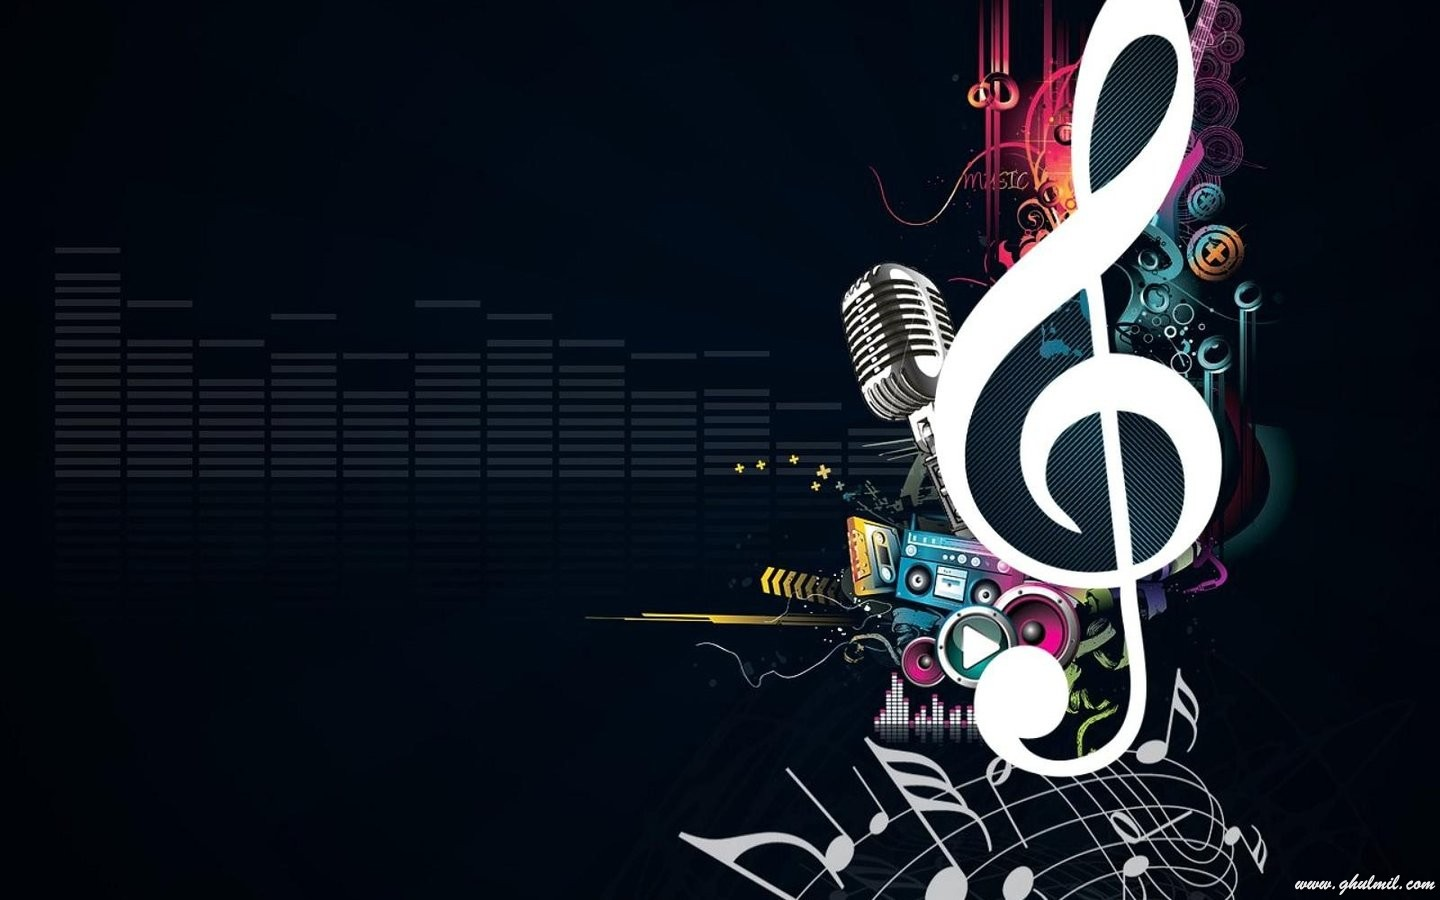 http://4.bp.blogspot.com/-_UOS2Sogknk/TxfsPKyoT5I/AAAAAAAABd4/geqK2sUde2k/s1600/beautiful-sign-of-music-desktopp-wallpaper.jpg